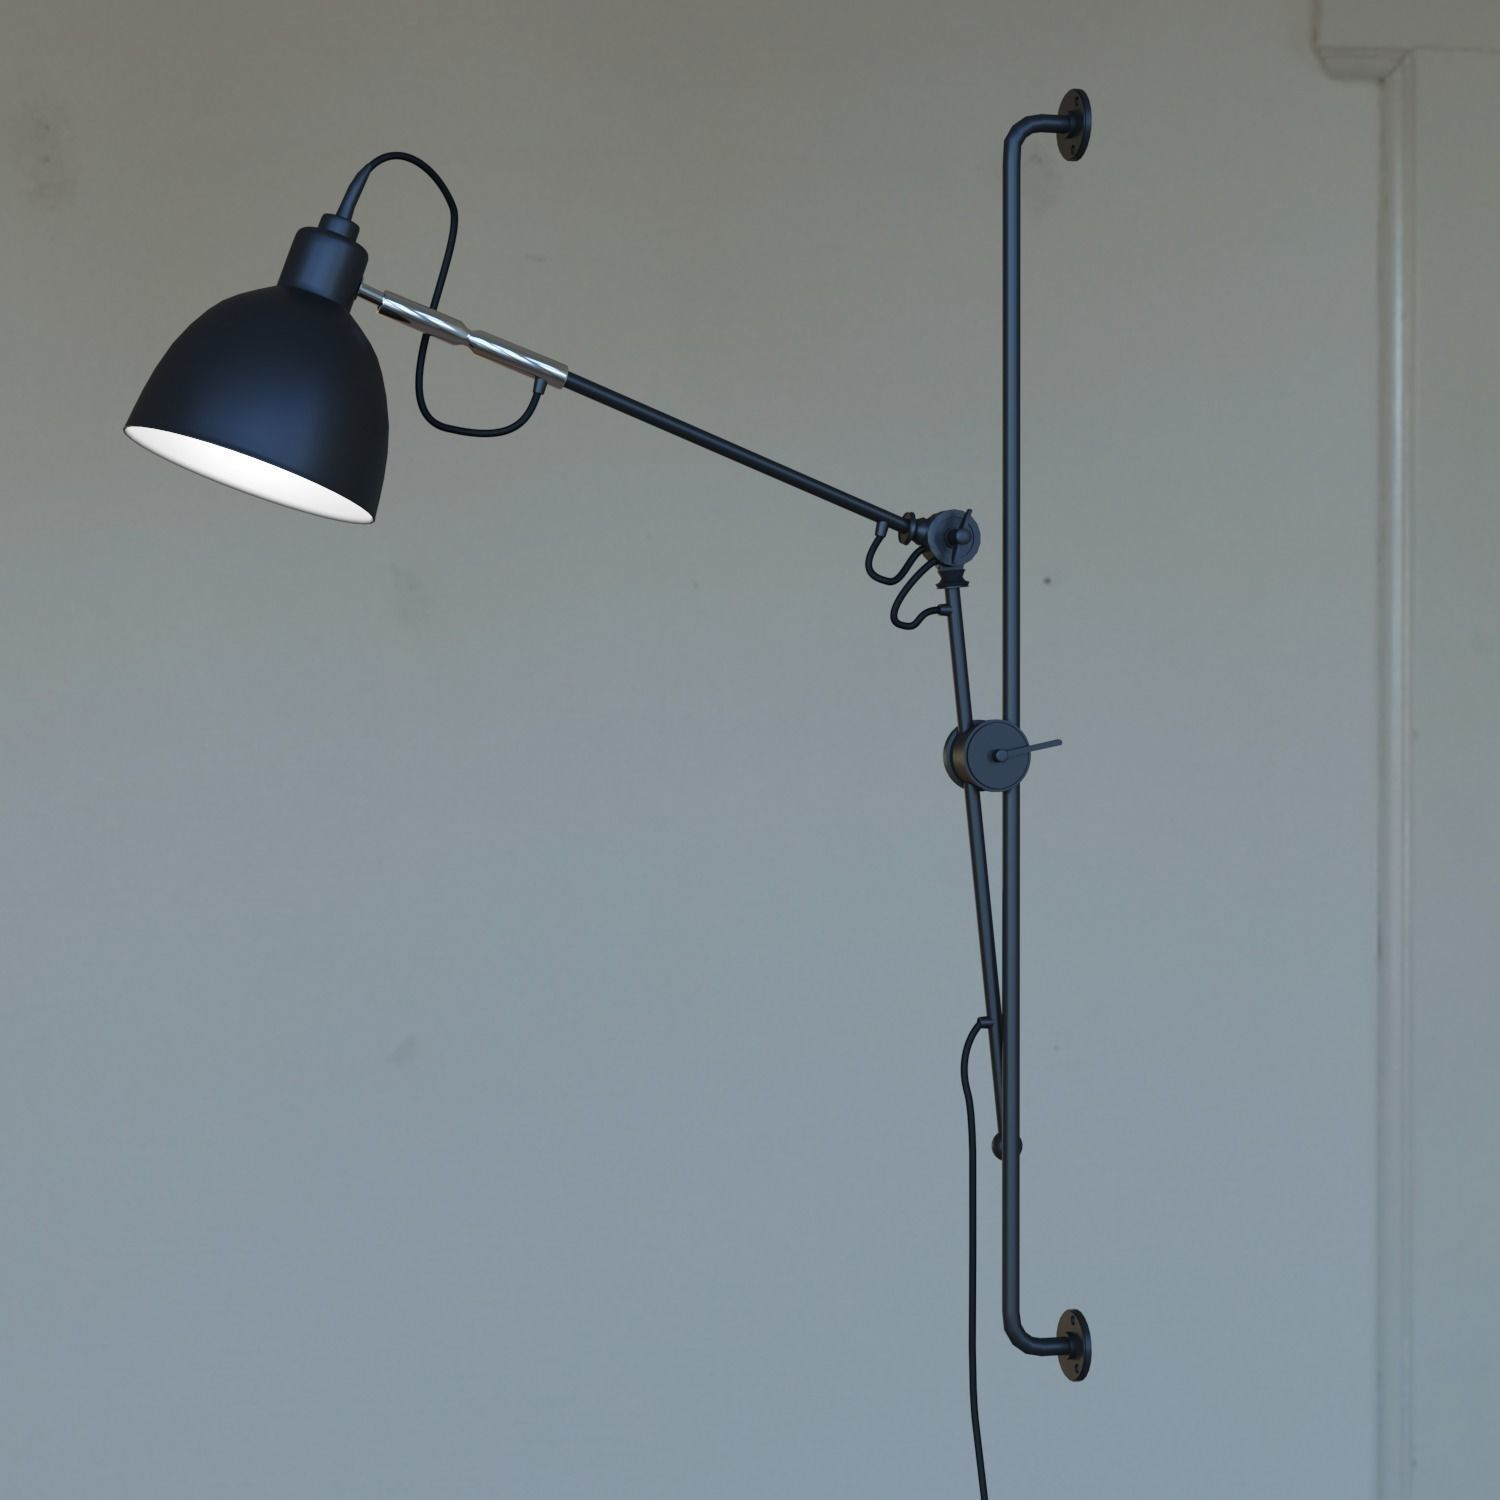 Industrial Swing Arm Lighting Newrays Adjustable Antique Industrial Swing Arm Wall Lamp 3d Model